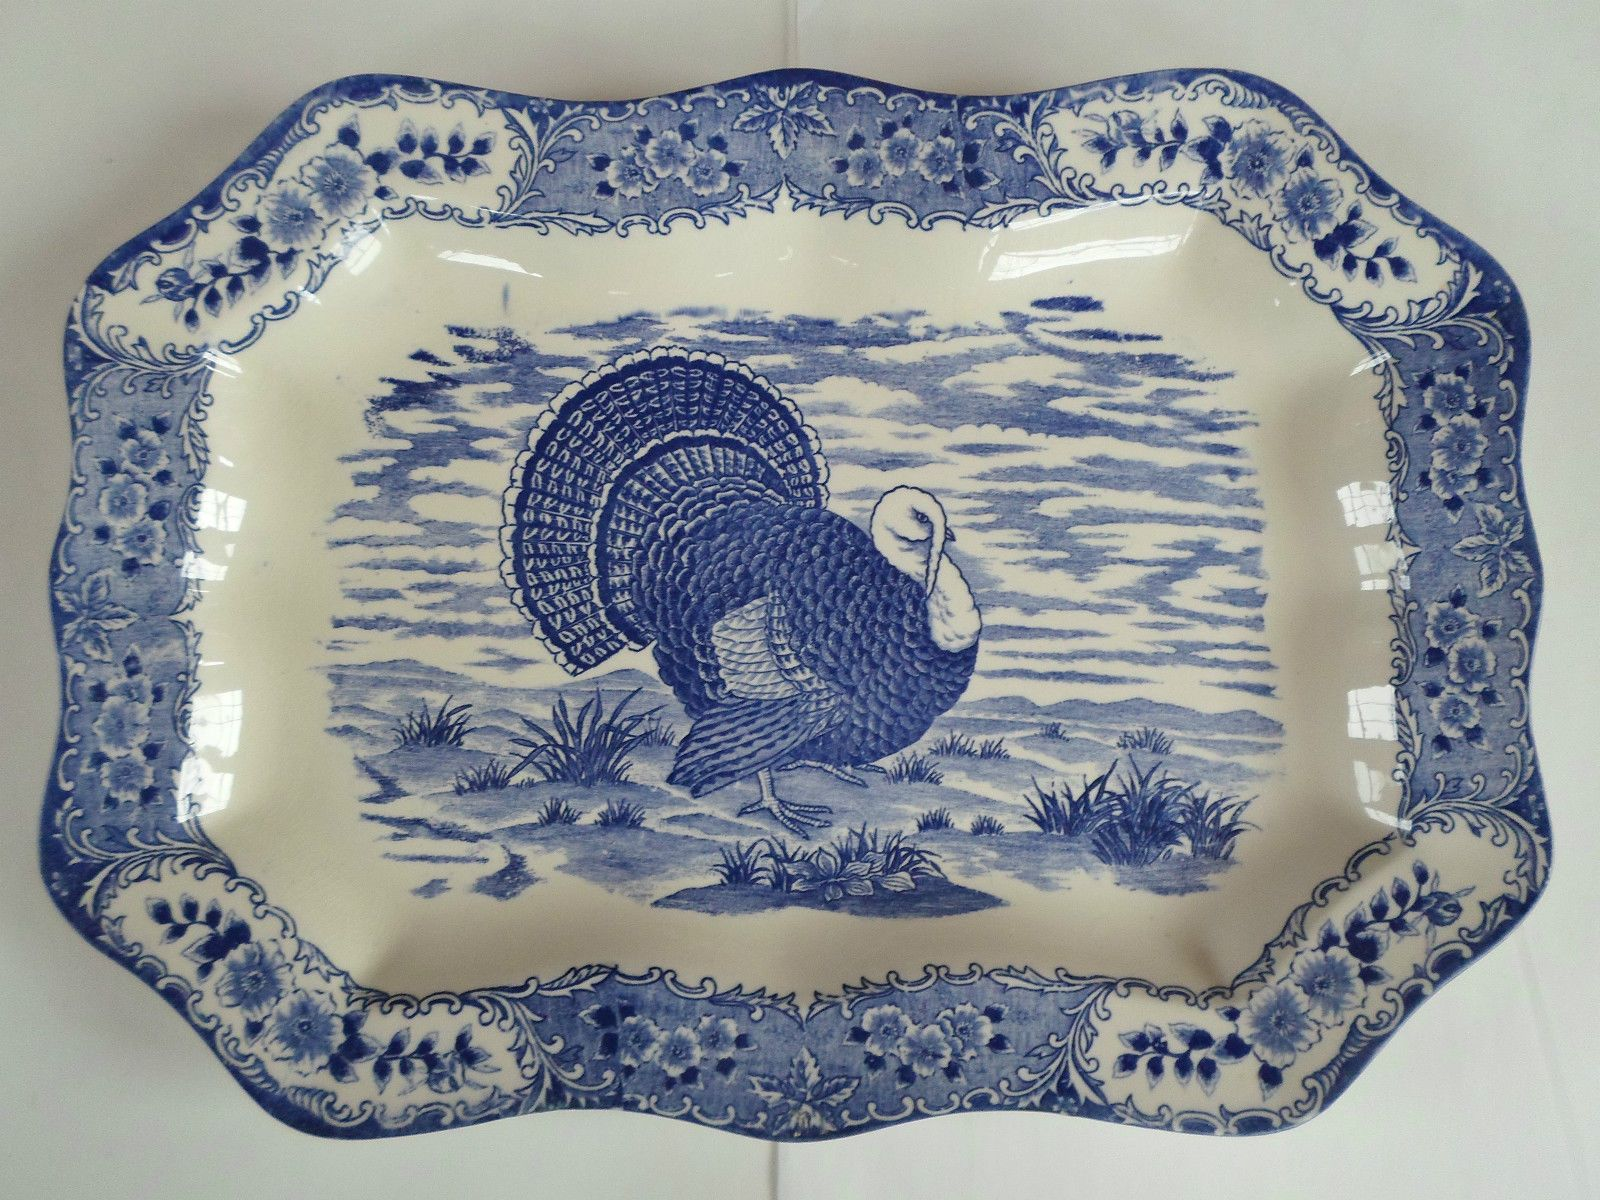 Large Turkey Platter Blue And White 14 3 4 X 20 1 2 Inches Blue And White Turkey Platter Blue Dishes